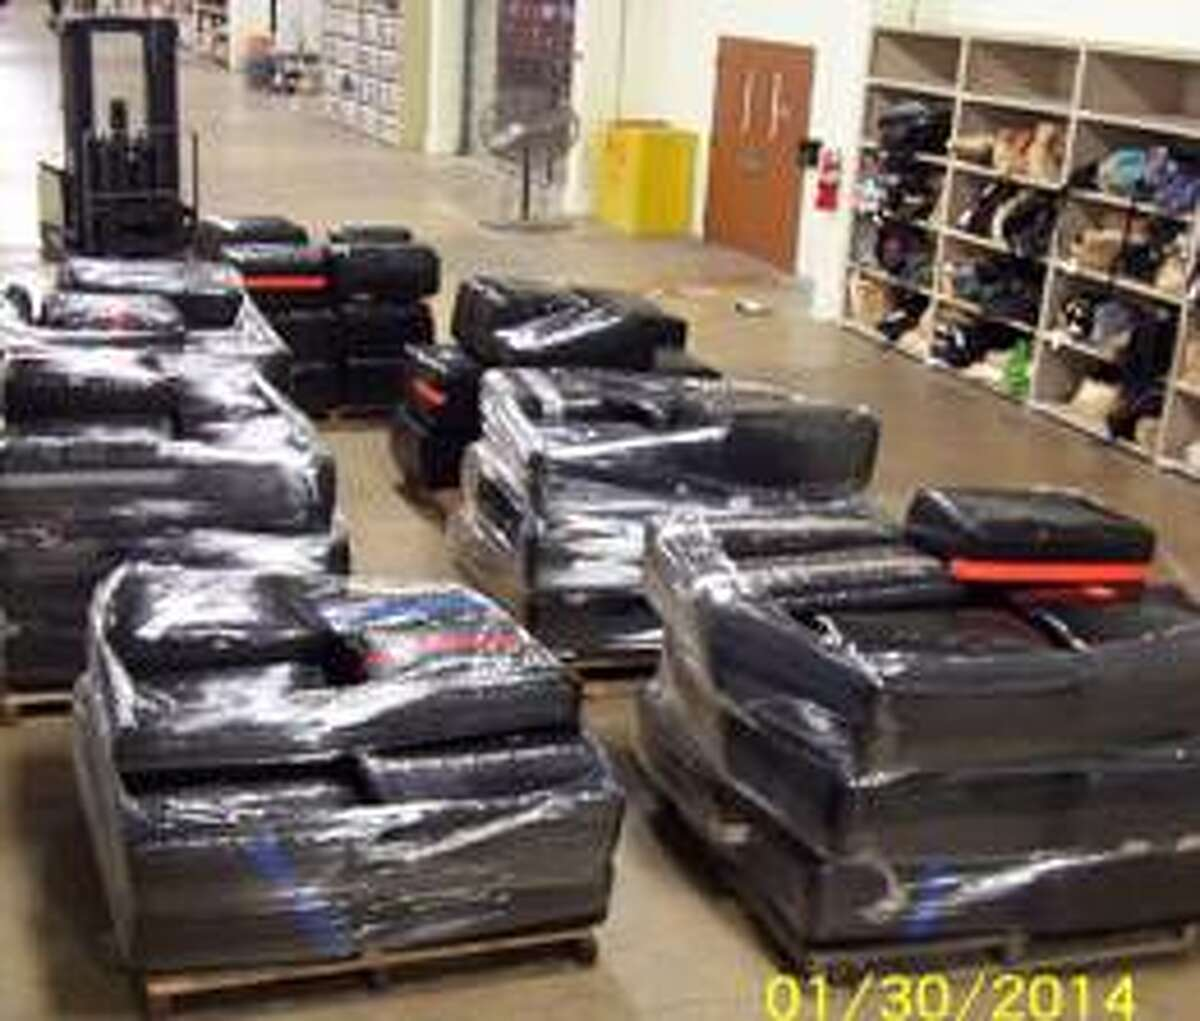 Jan. 30, 2014: Bundles of marijuana, totaling an estimated 5,076 pounds, seized by SAPD from an 18-wheeler truck and trailer Thursday in downtown San Antonio.